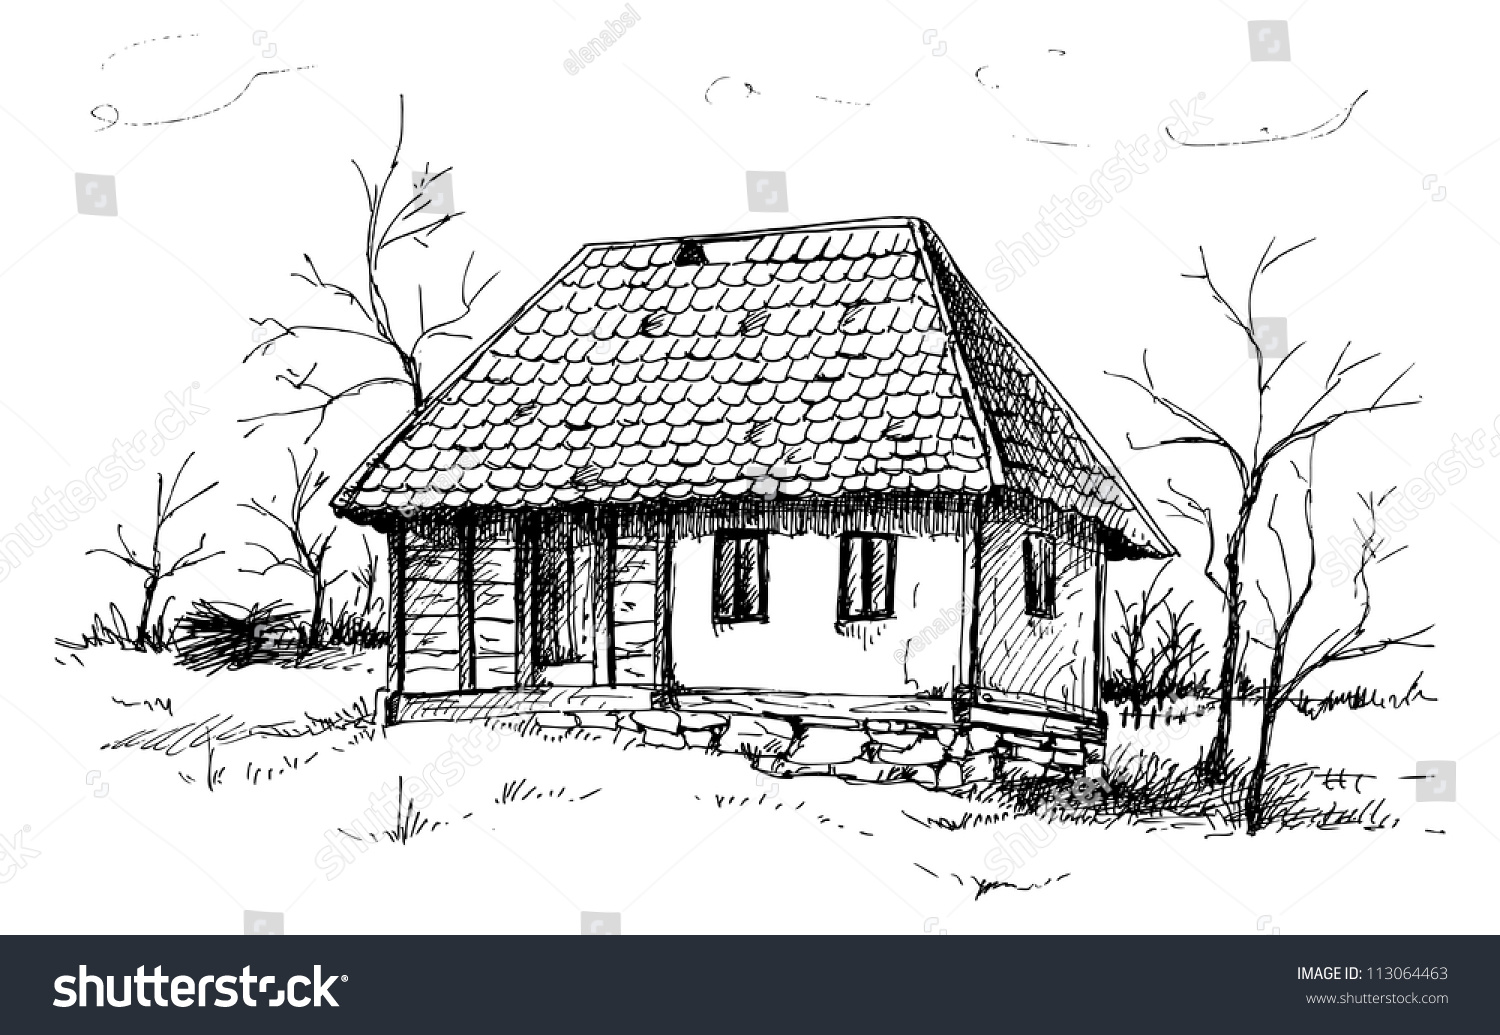 Old house sketch stock vector illustration 113064463 shutterstock